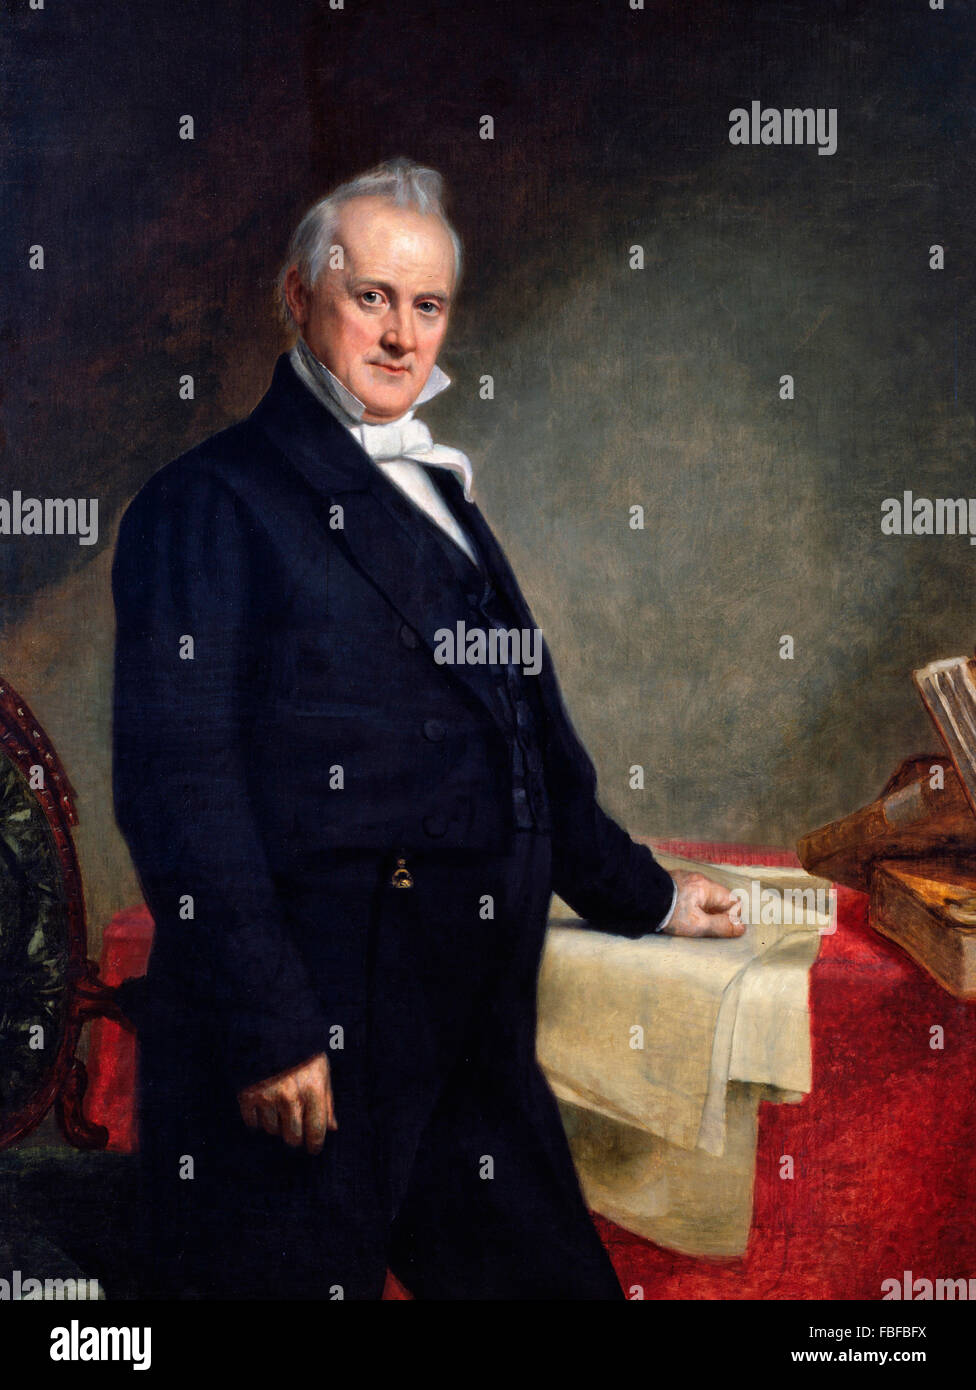 James Buchanan. Portrait of the 15th US President by George Peter Alexander Healy, 1859 - Stock Image